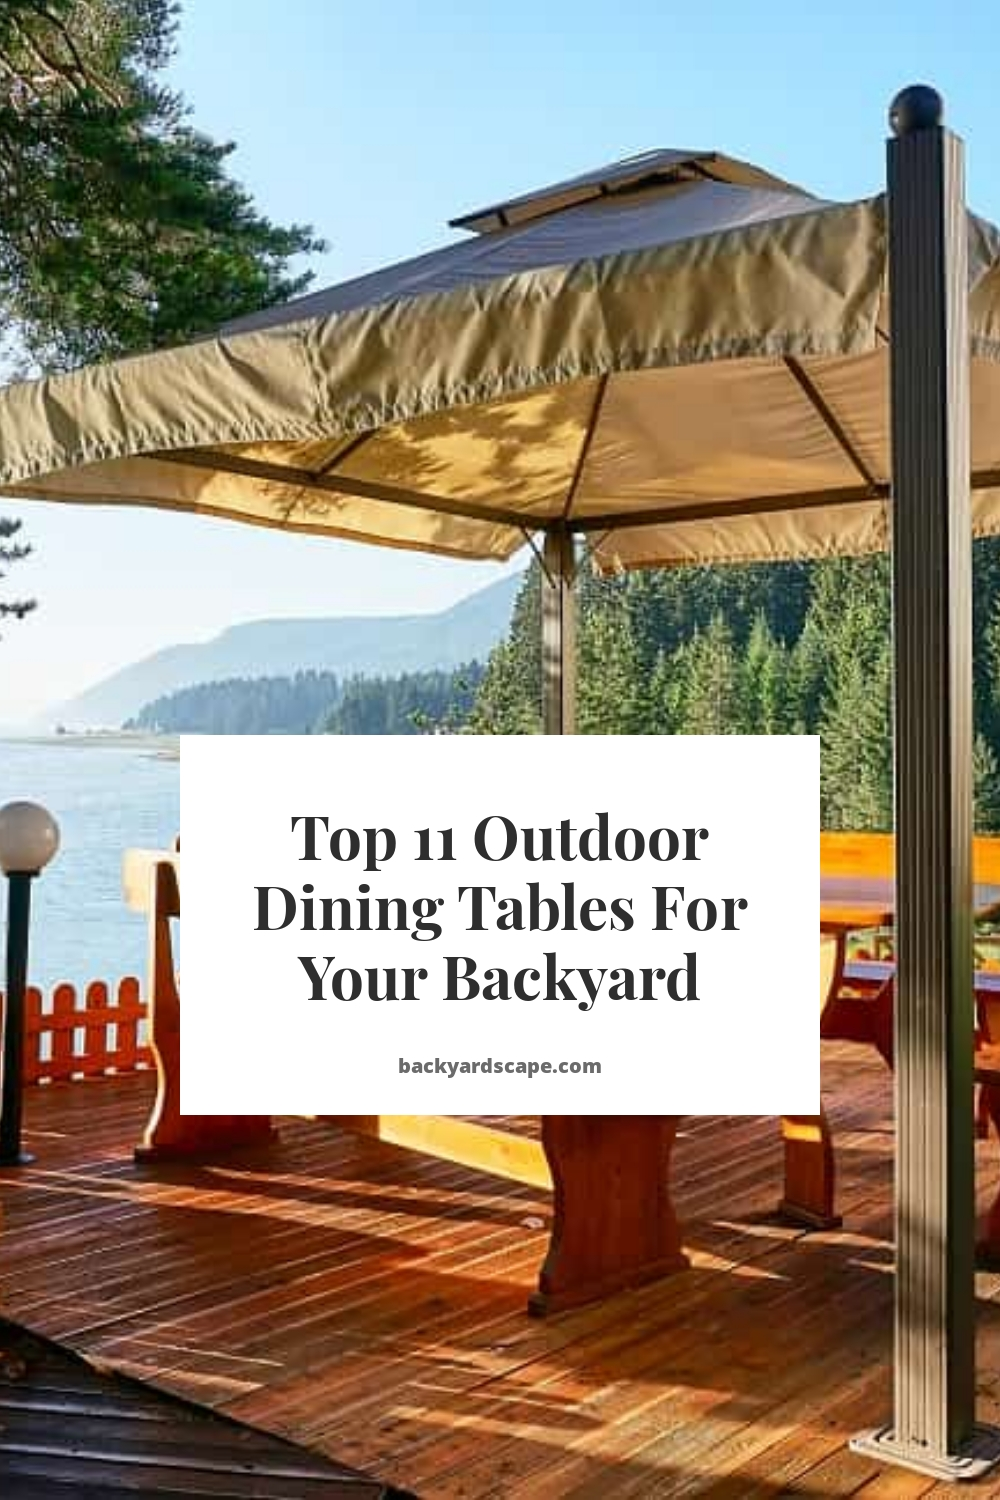 Top 11 Outdoor Dining Tables For Your Backyard